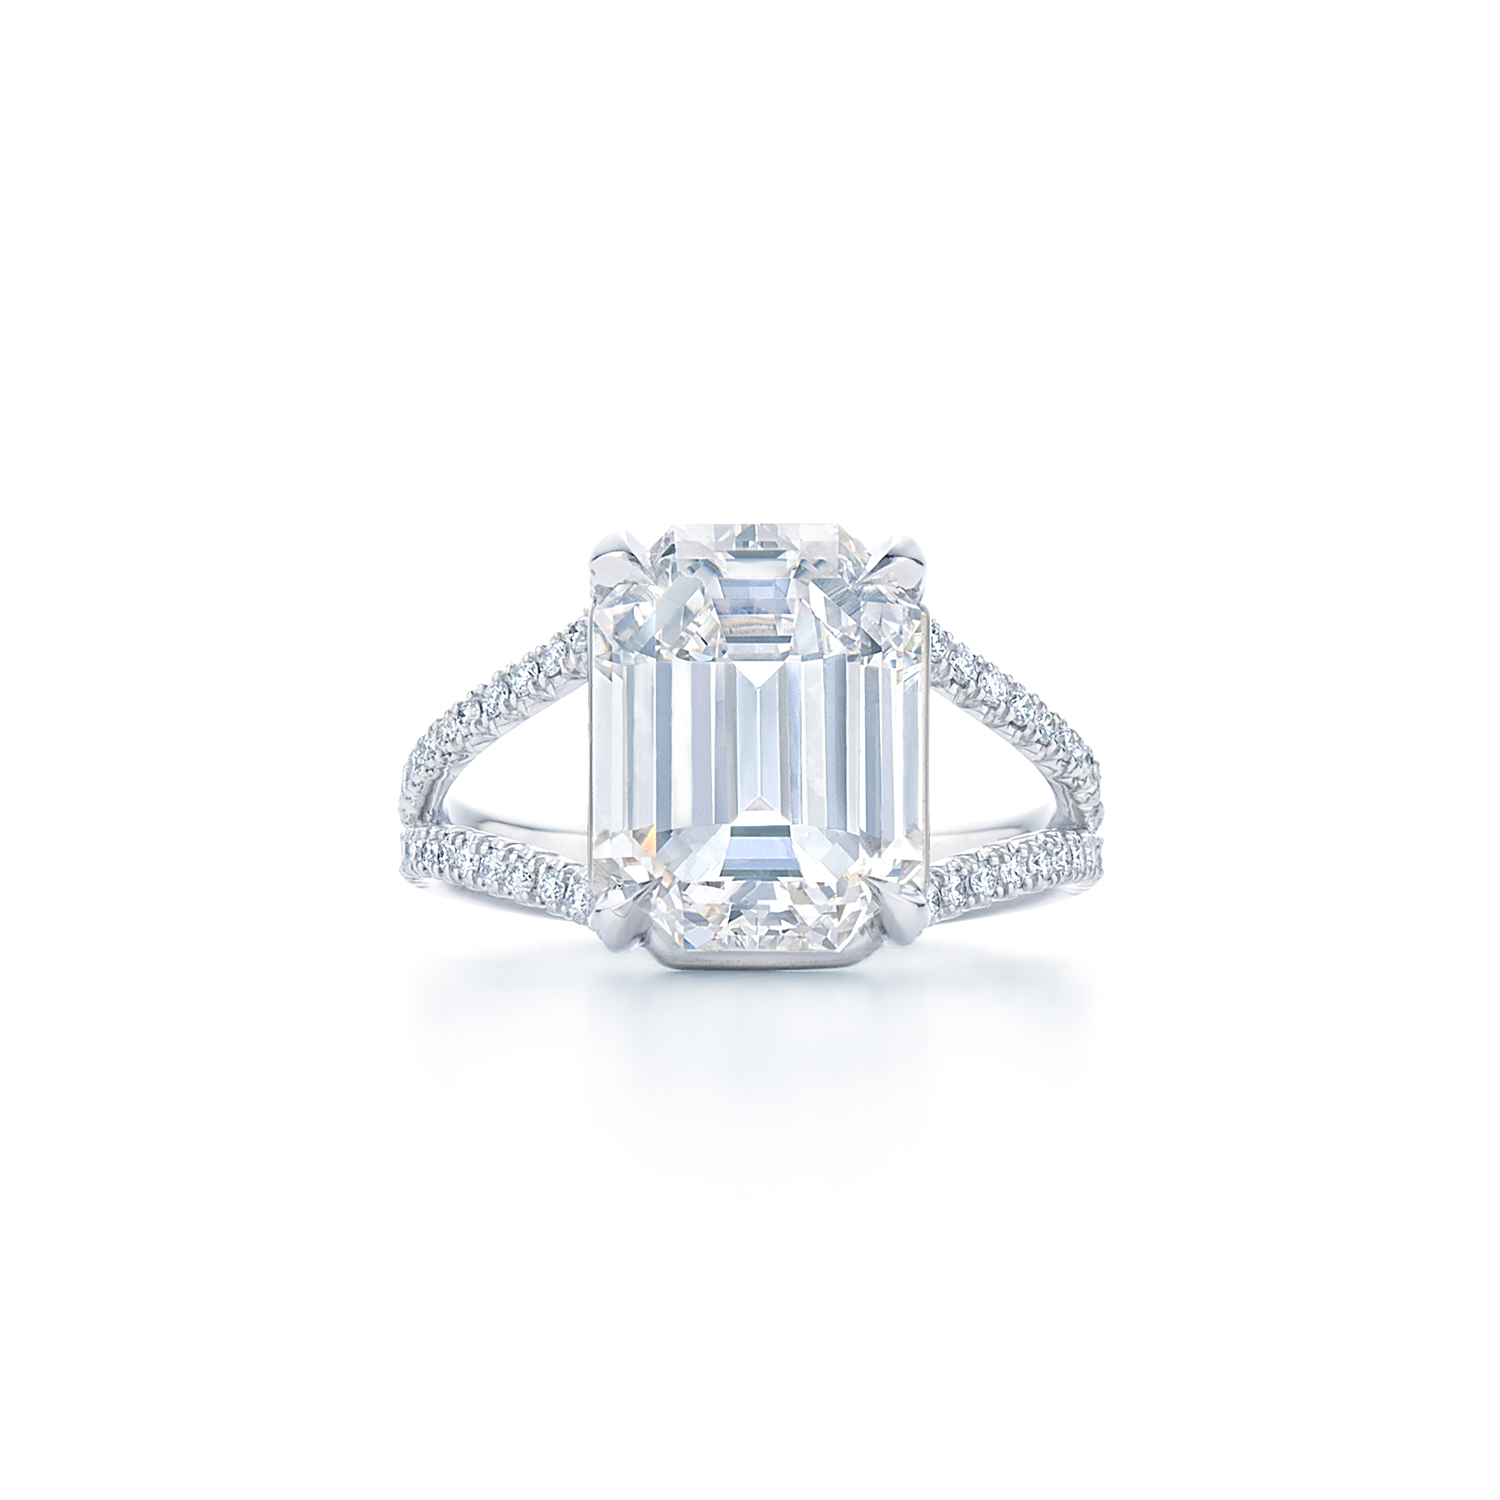 emerald cut diamond ring with split pave diamond diamond band set